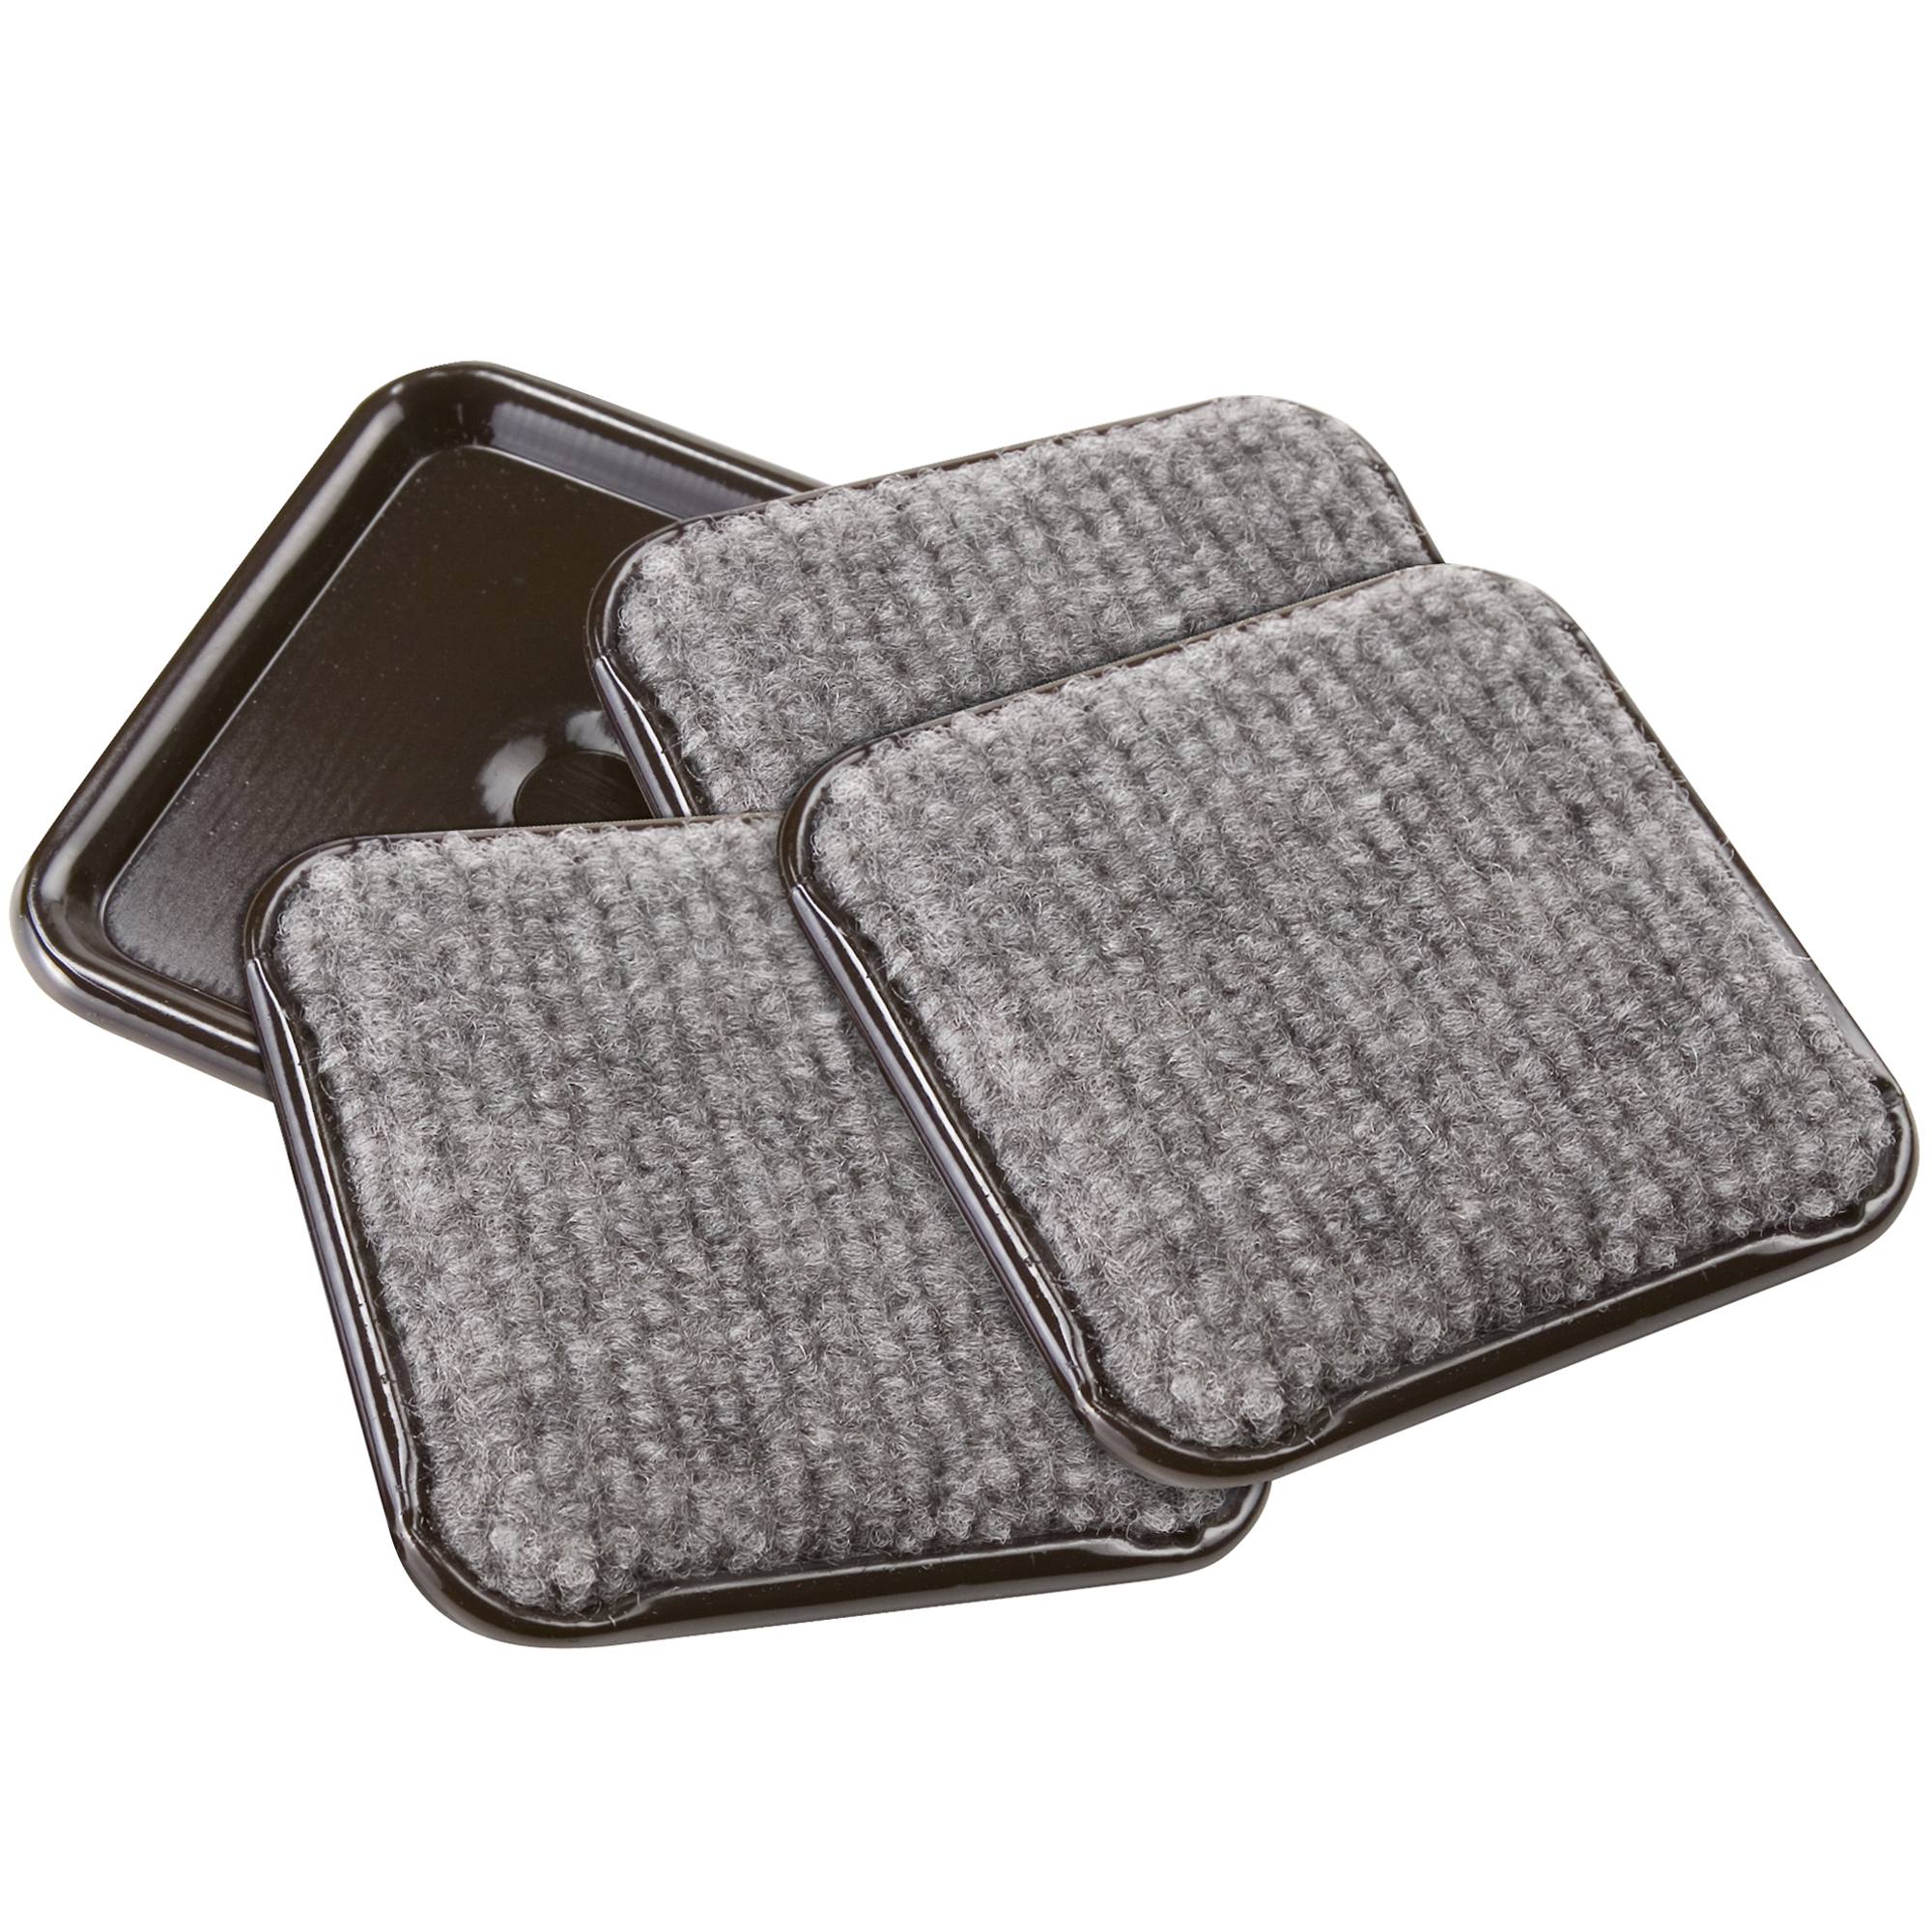 "Soft Touch 2-1/2"" Square Carpet Caster Cups"